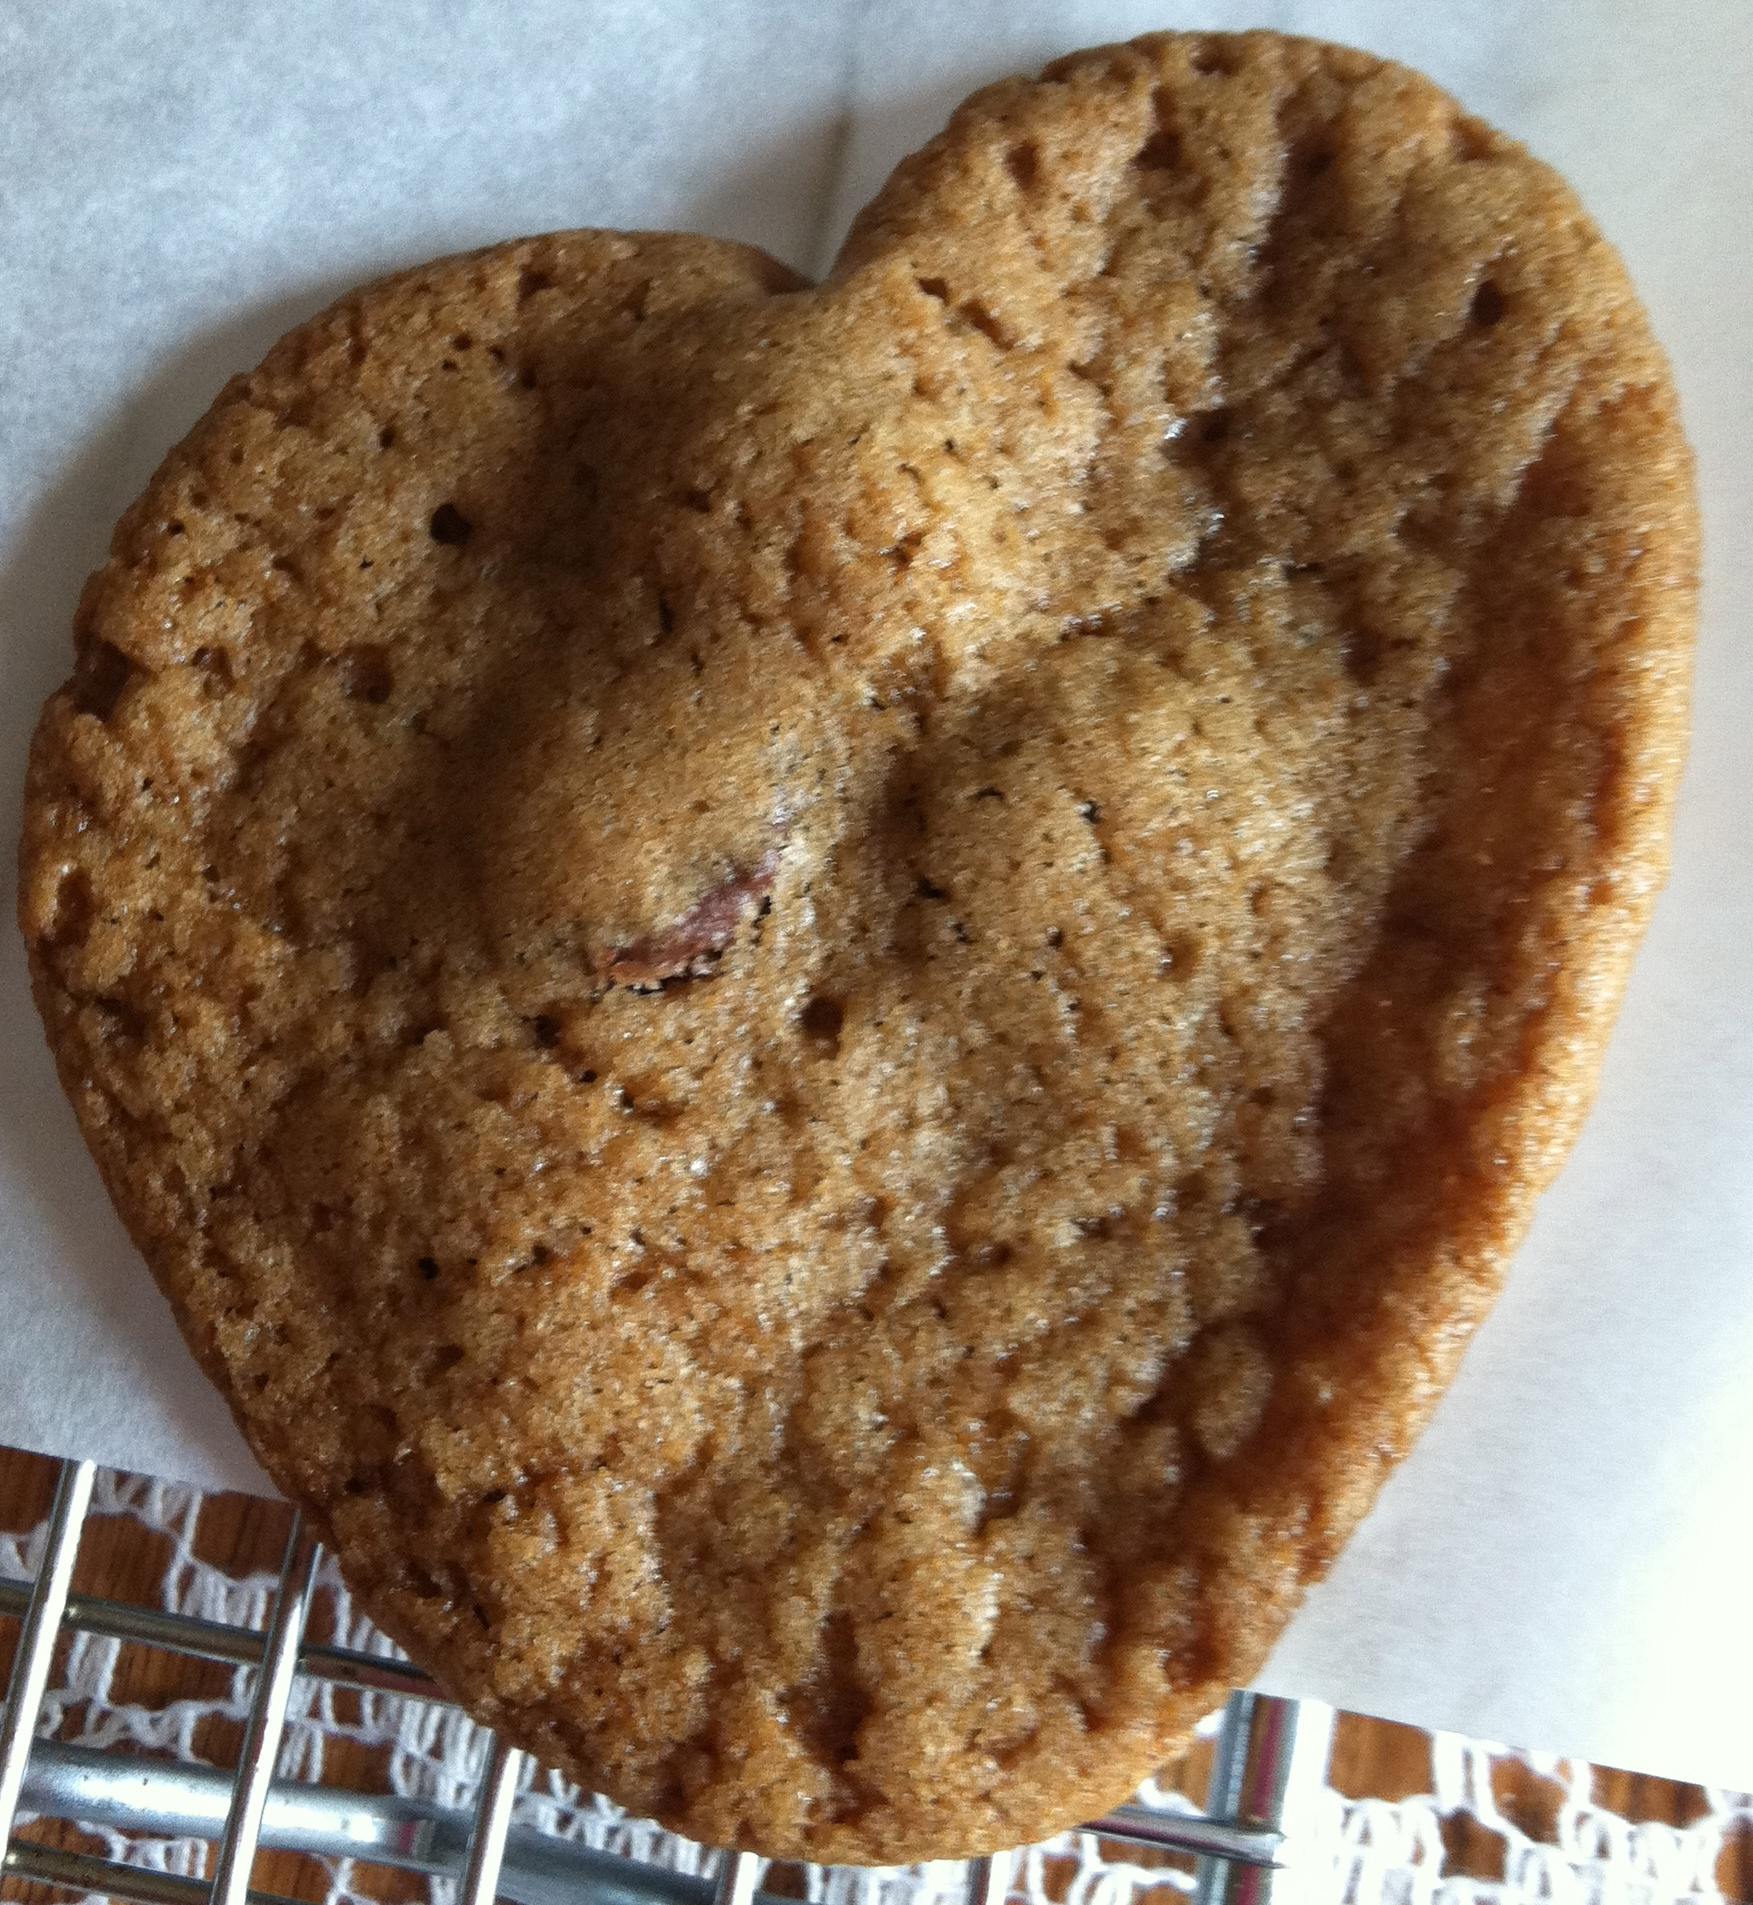 Sweet William's Fancy Chocolate Chip Cookie